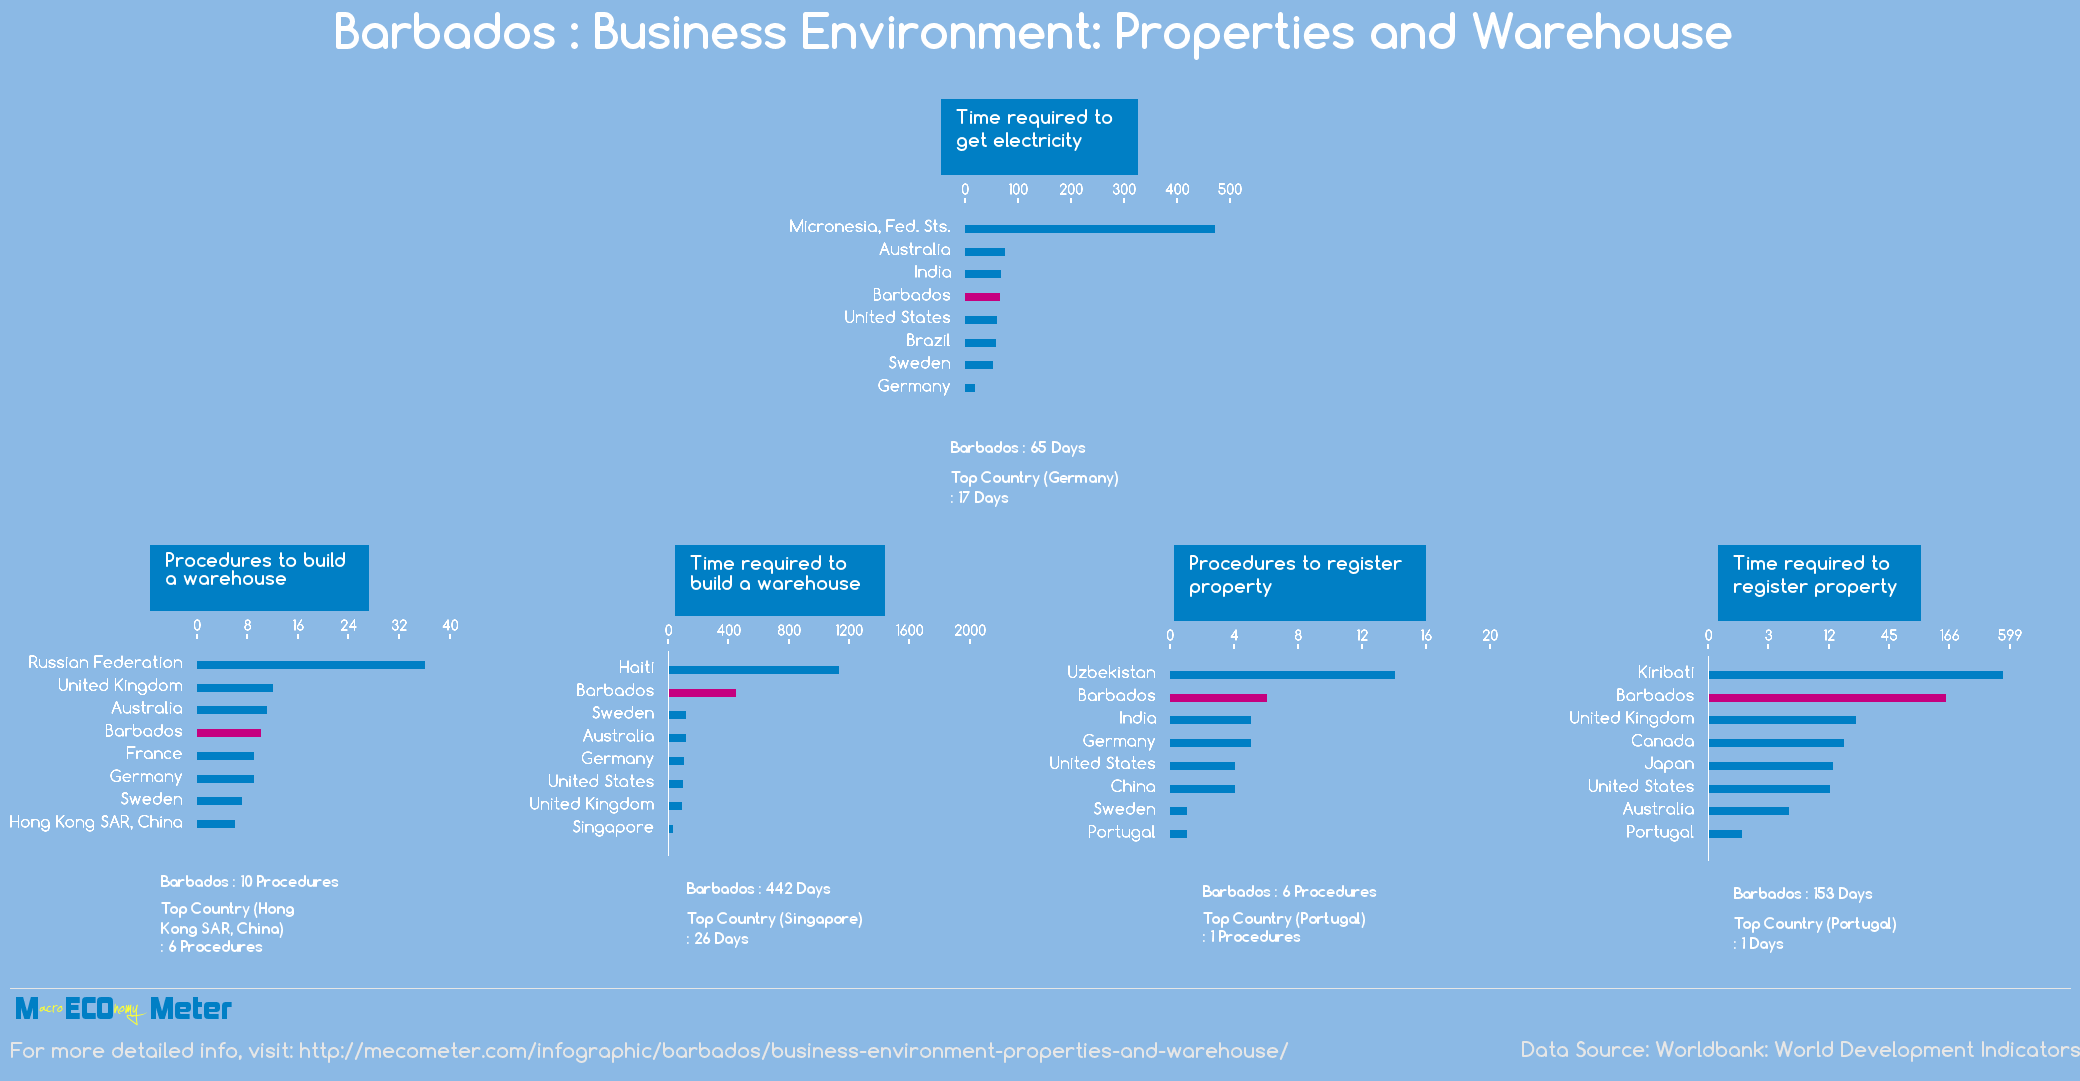 Barbados : Business Environment: Properties and Warehouse